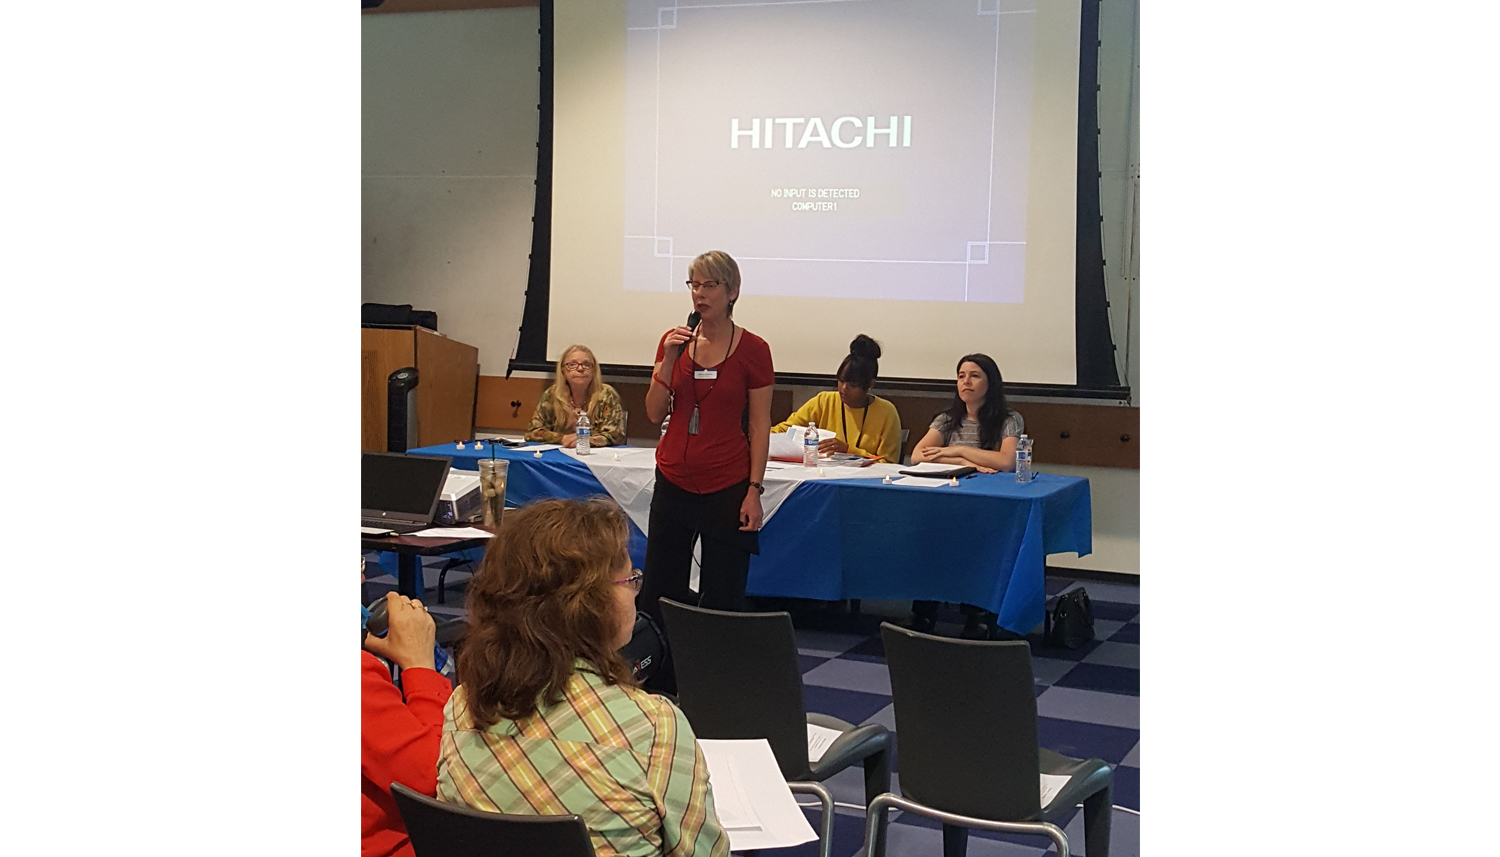 Photo of Branch Manager, Barbara Schwartz, kicking-off a community event held at the Mira Mesa Library.